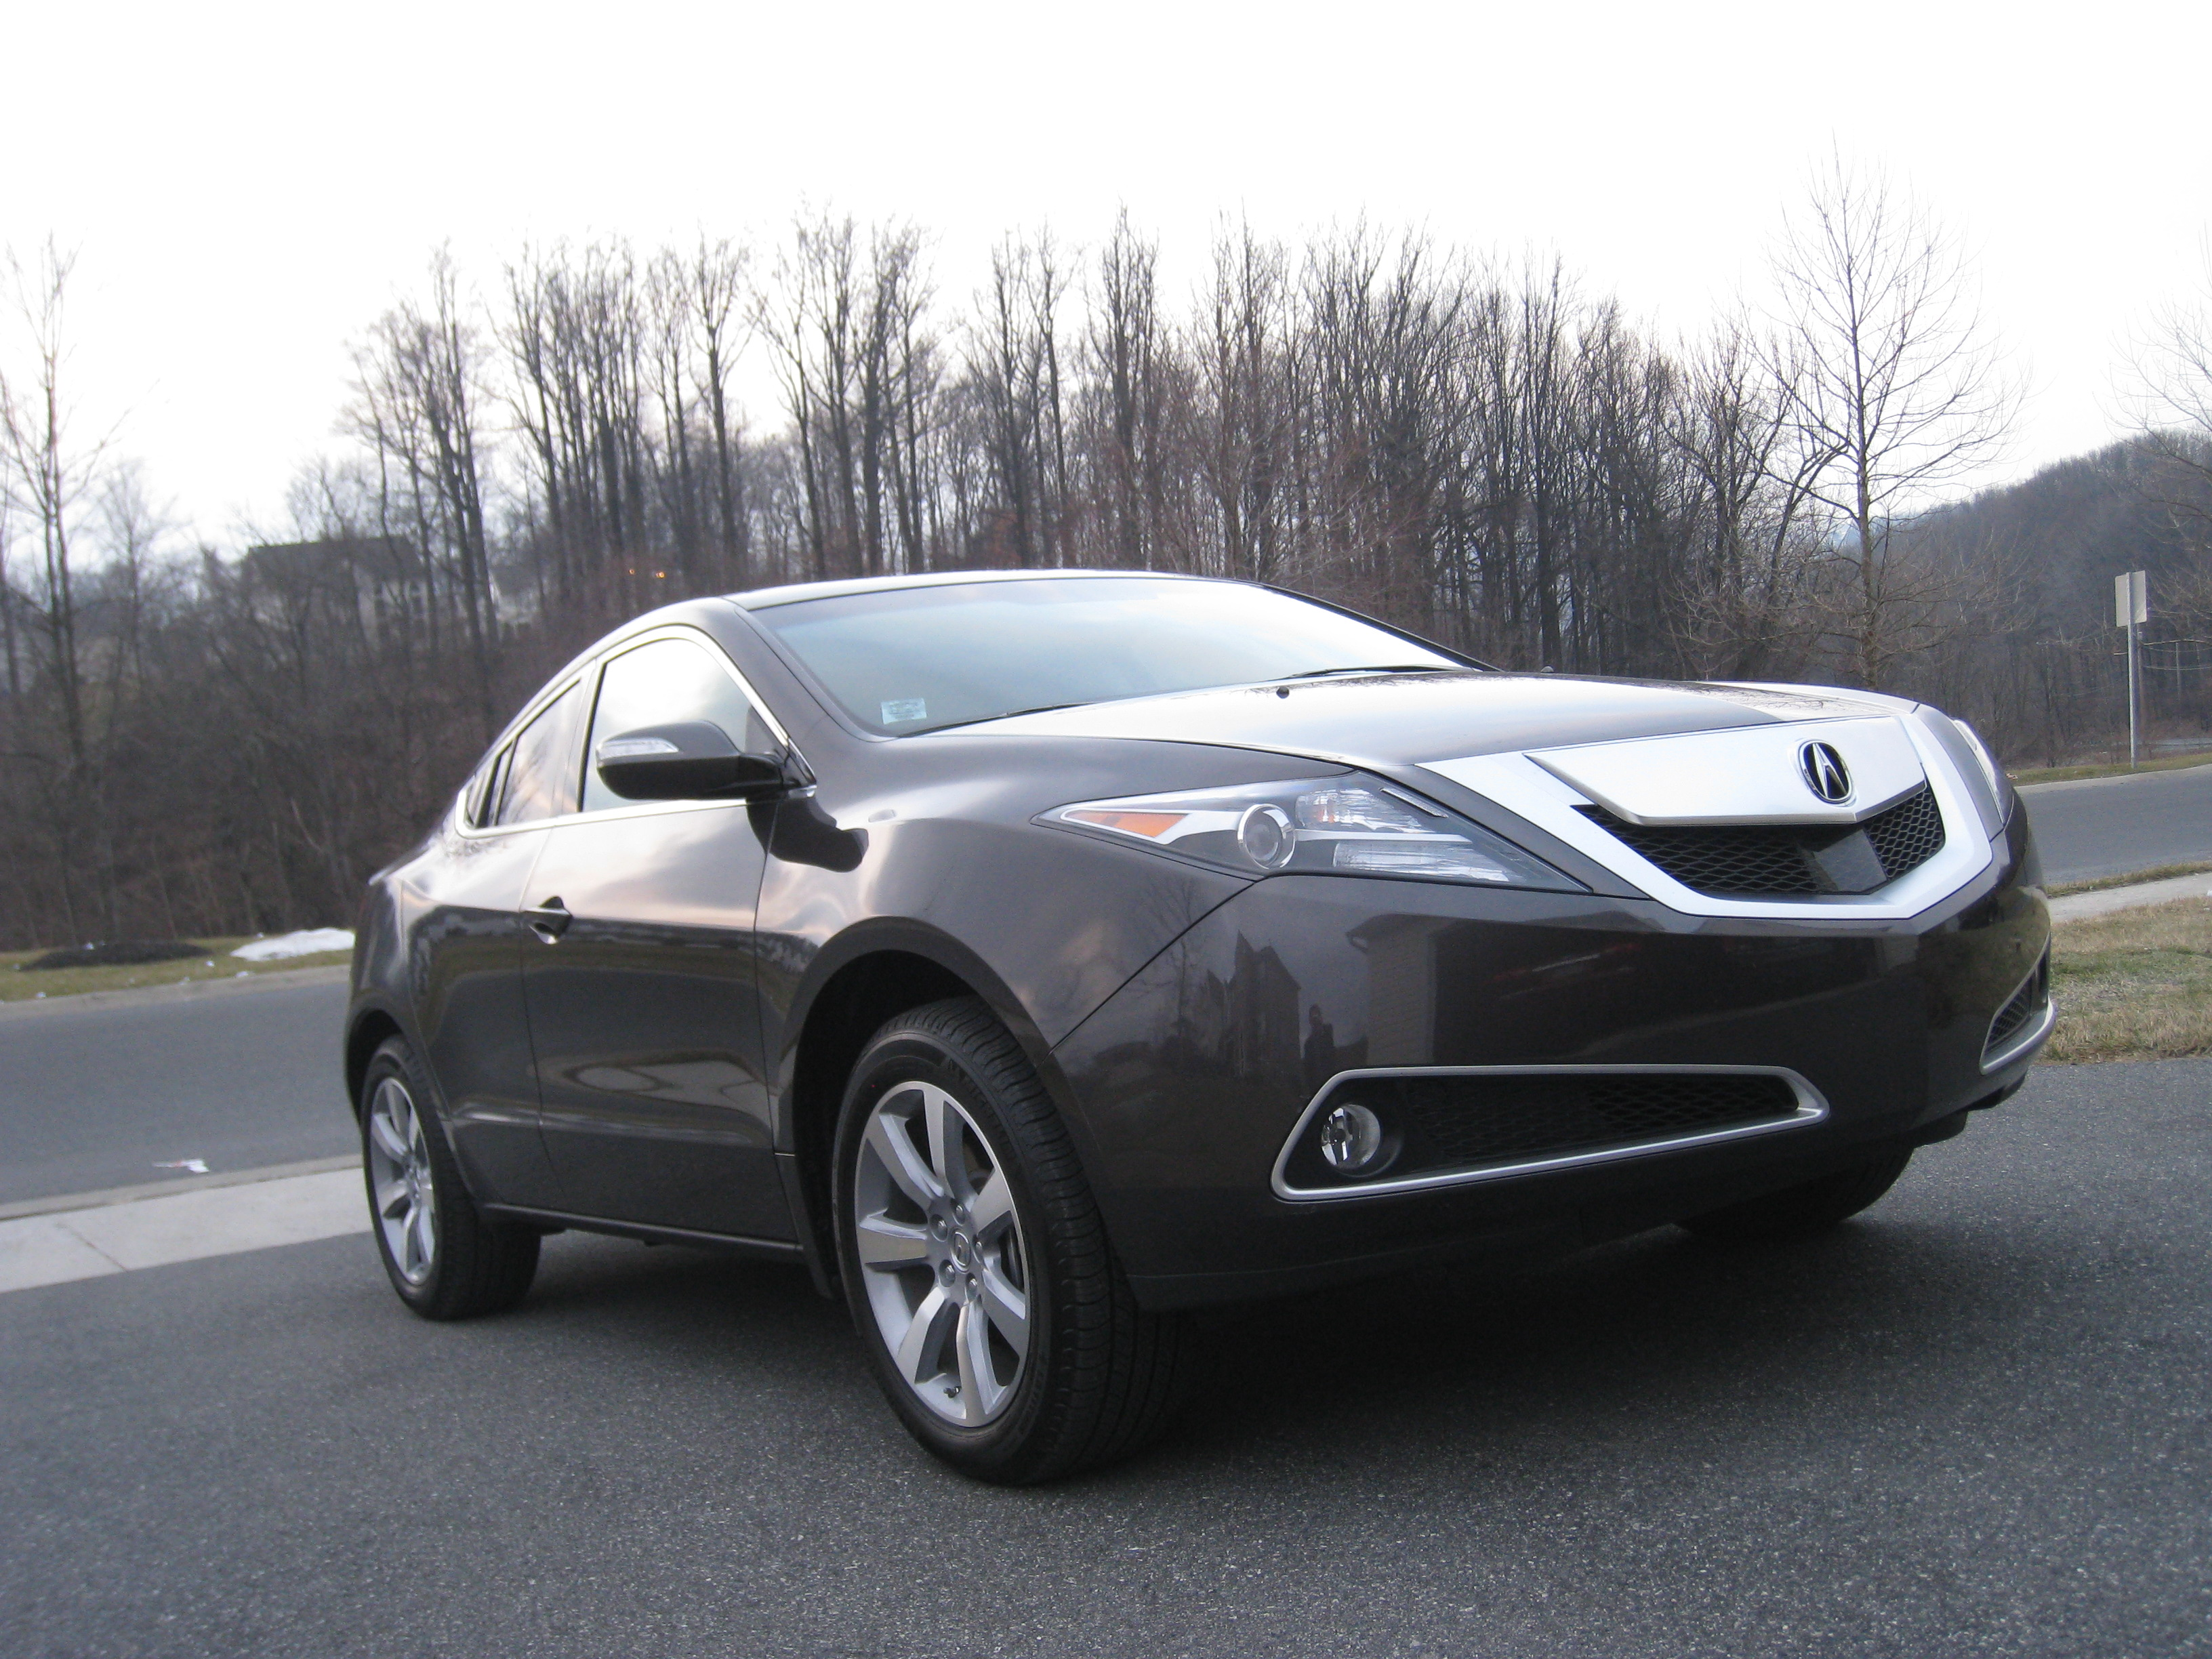 fresh top suv crossover acura new pict of tipztop and in hd wallpapers best car